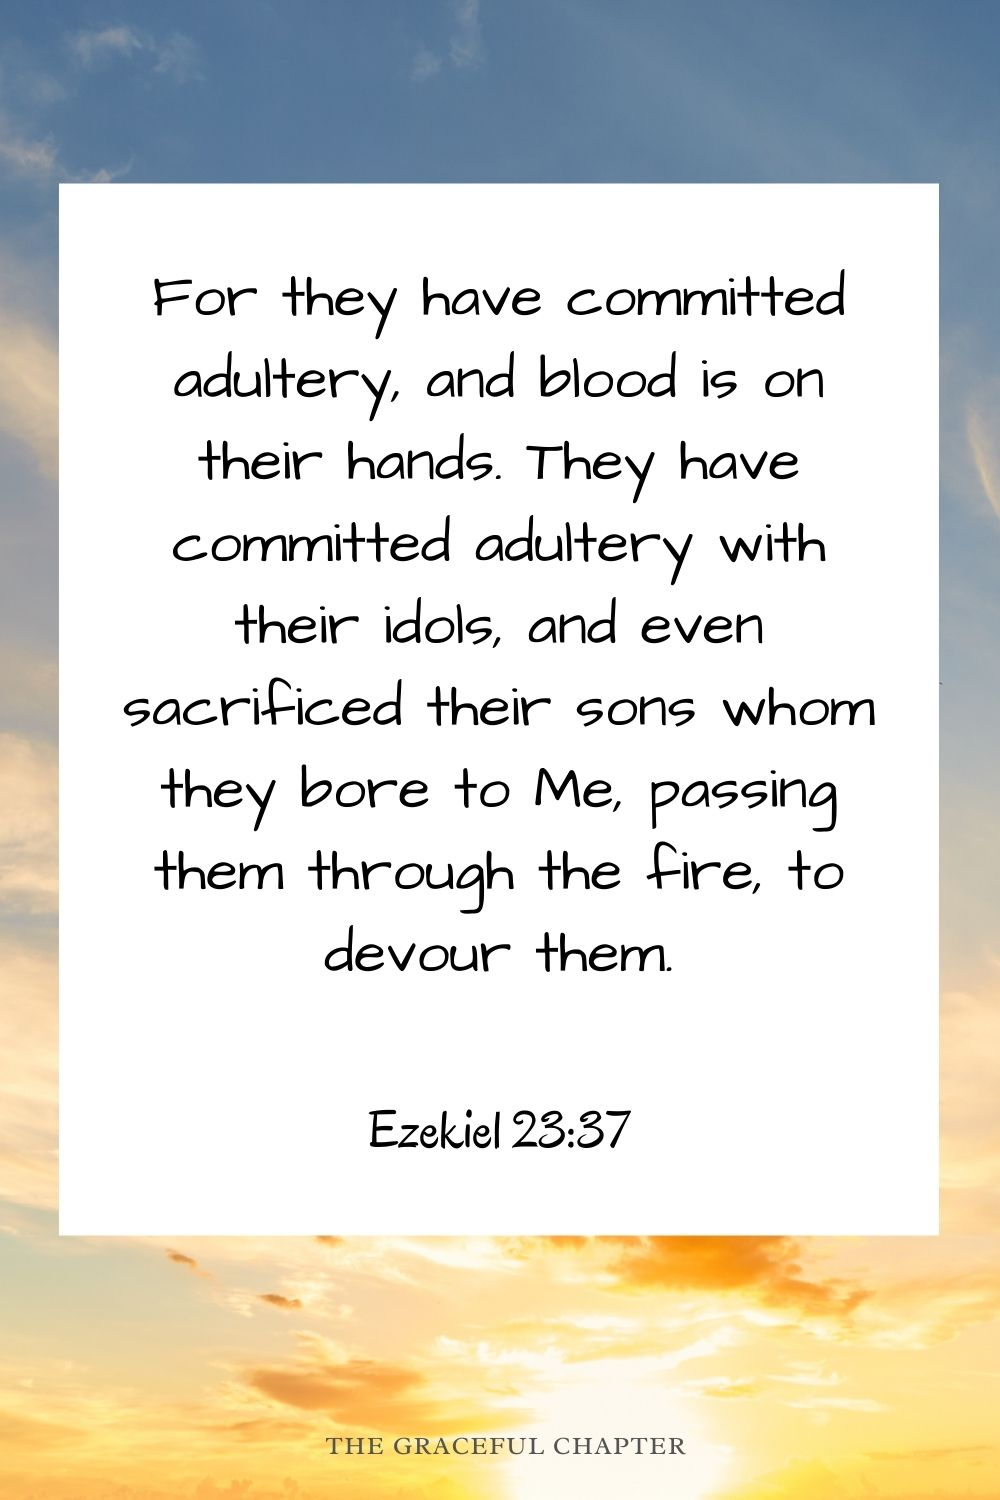 For they have committed adultery, and blood is on their hands. They have committed adultery with their idols, and even sacrificed their sons whom they bore to Me, passing them through the fire, to devour them. Ezekiel 23:37